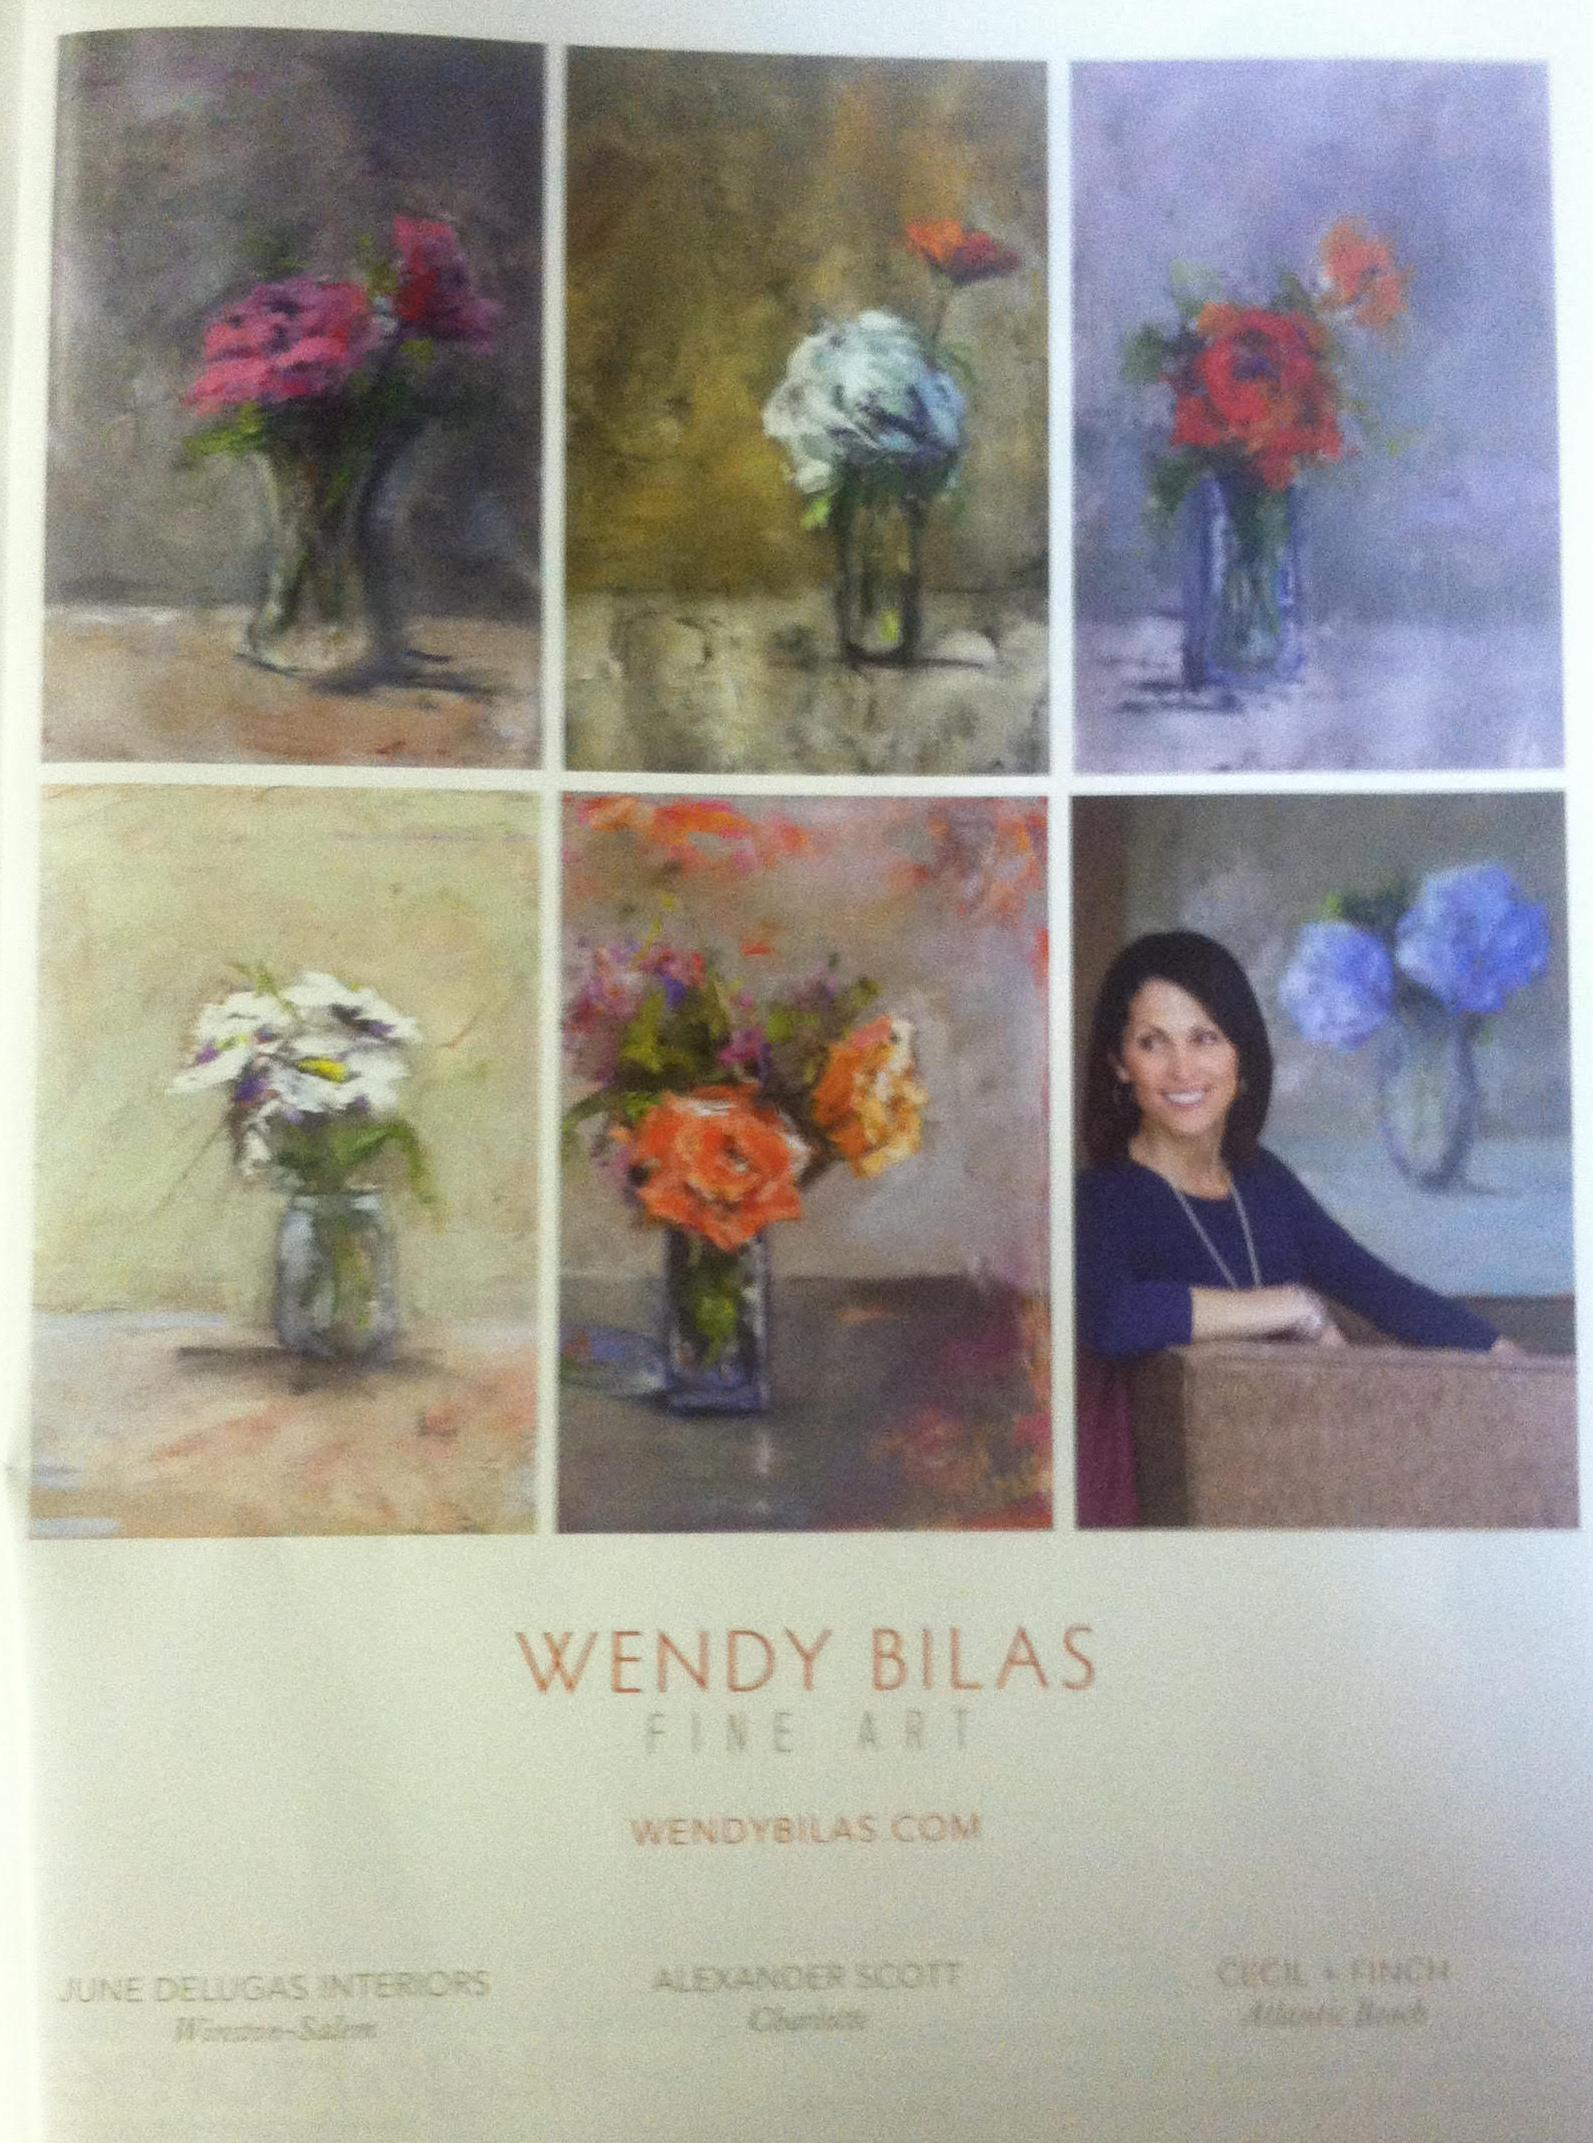 Wendy Bilas is an Exhibiting Artist in our Monday morning class